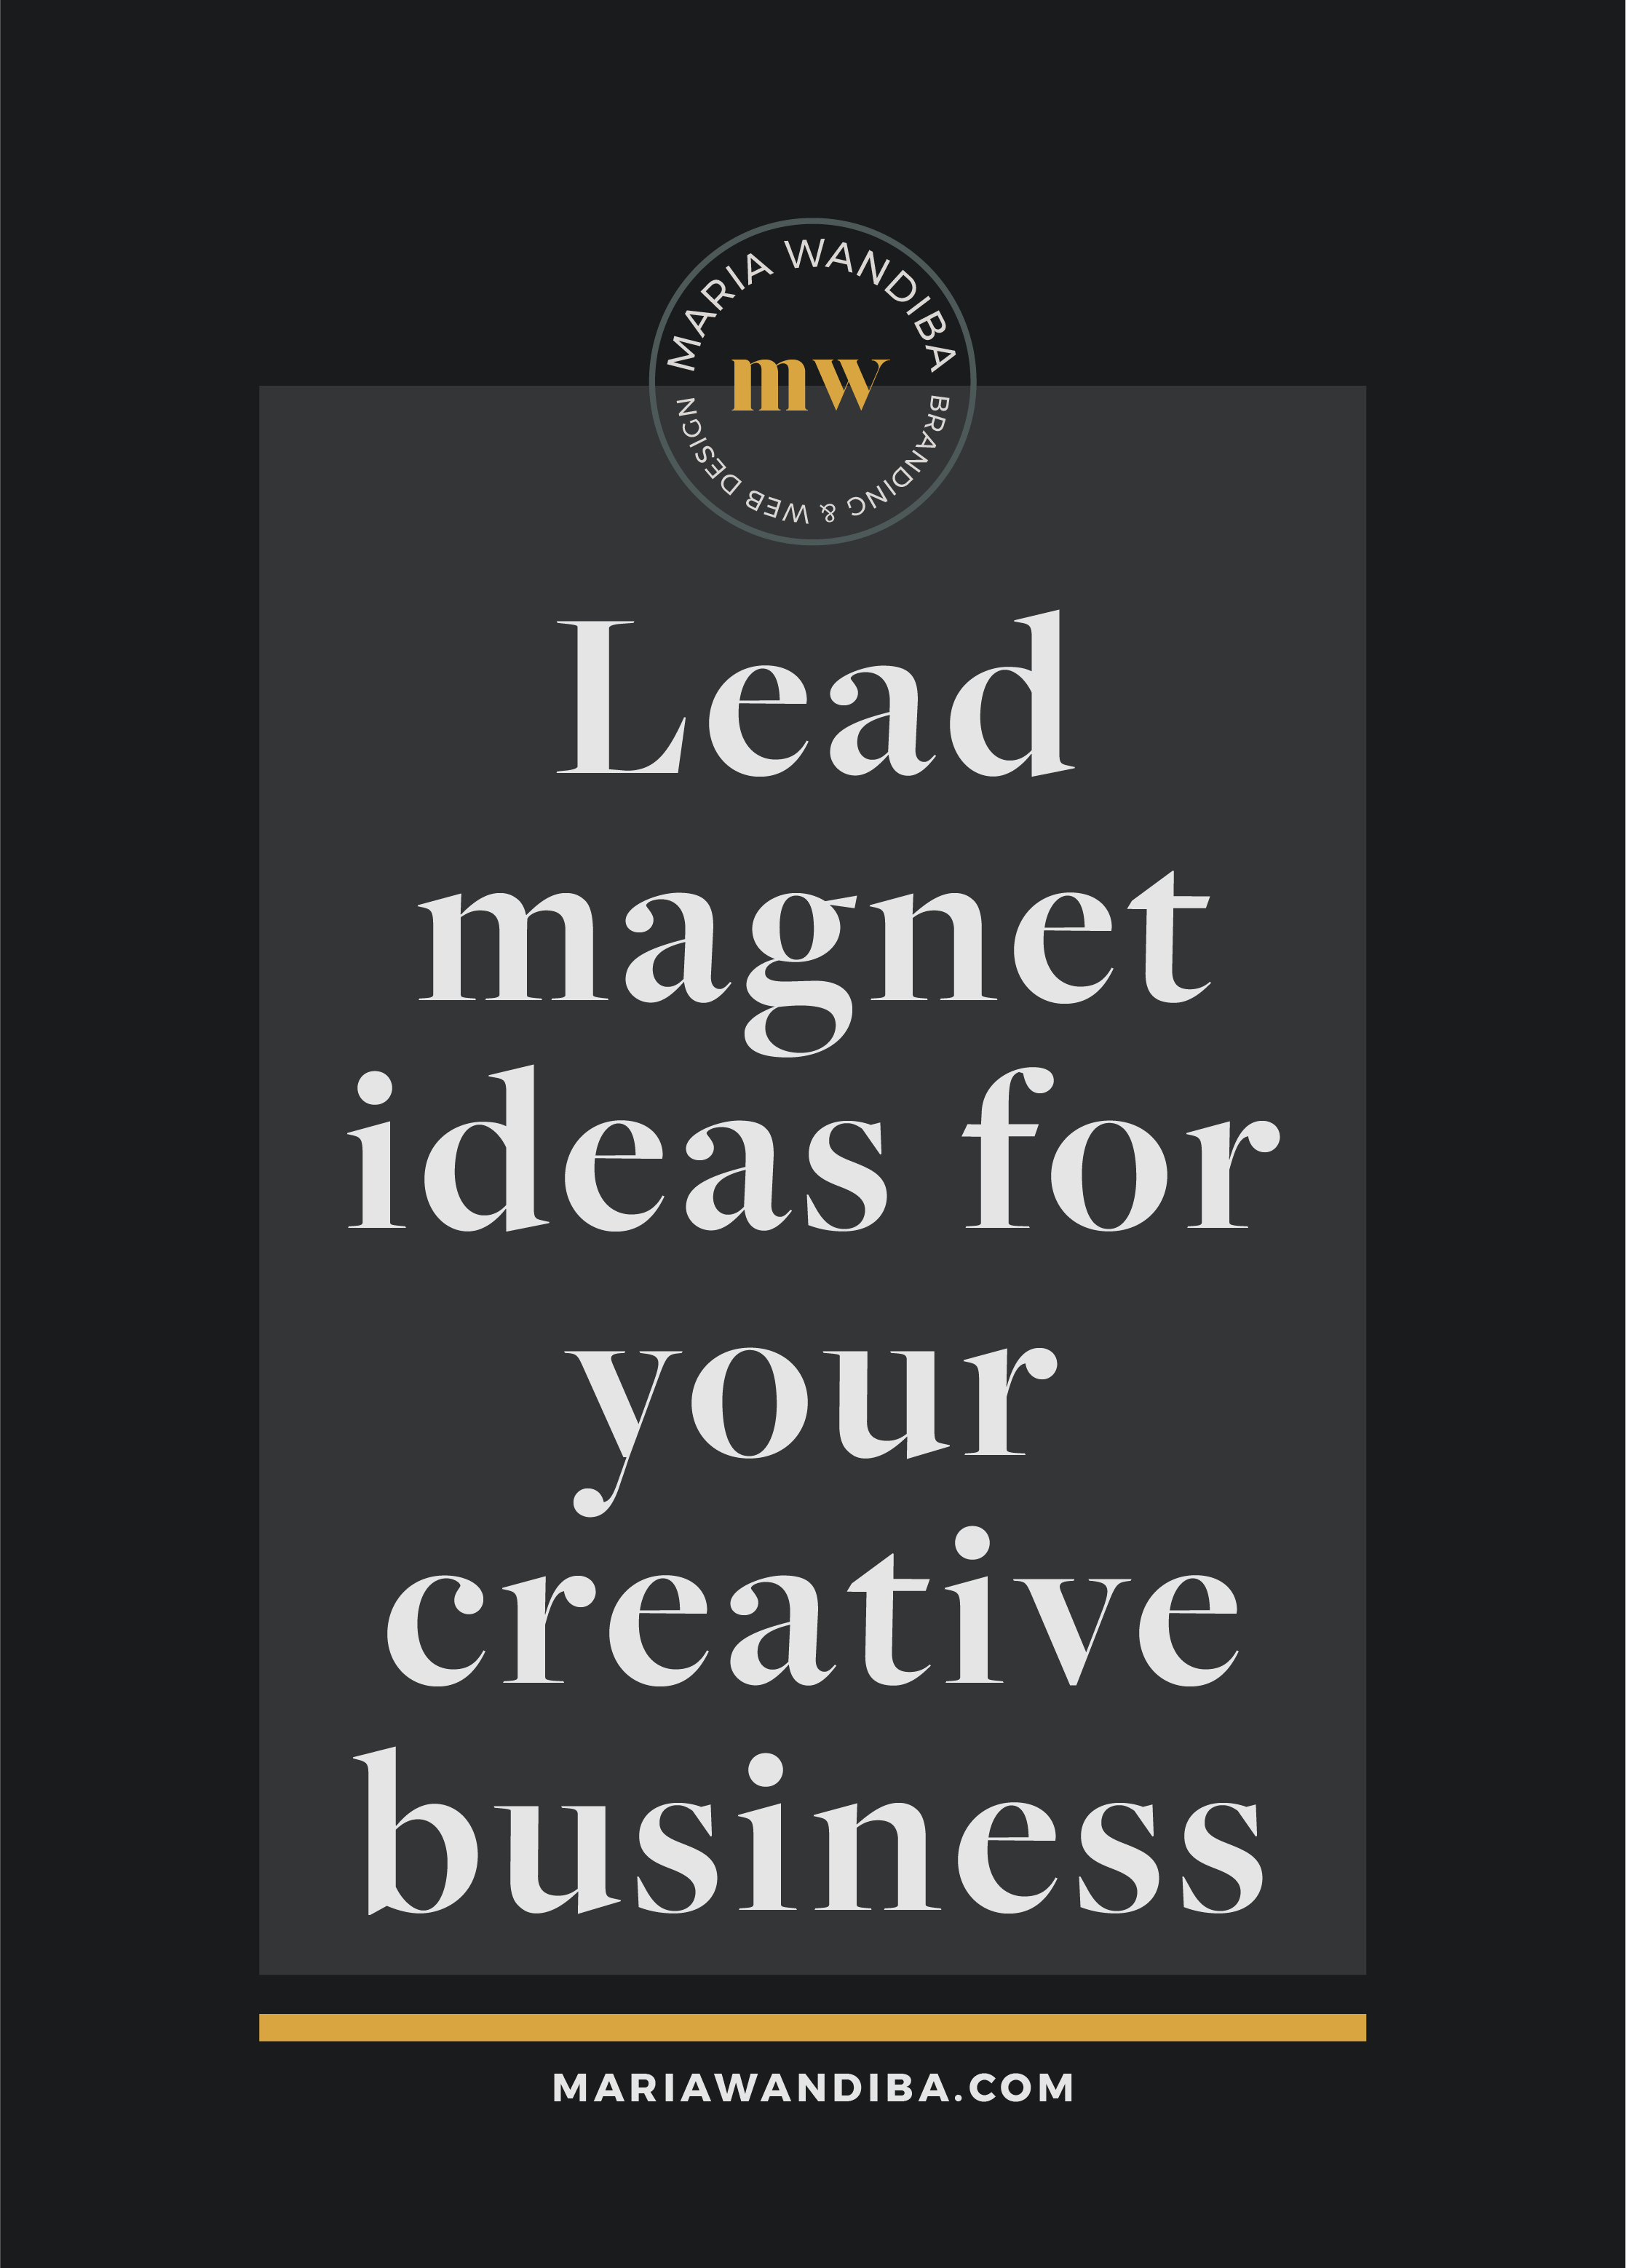 lead magnet ideas for your creative business_Pinterest.png